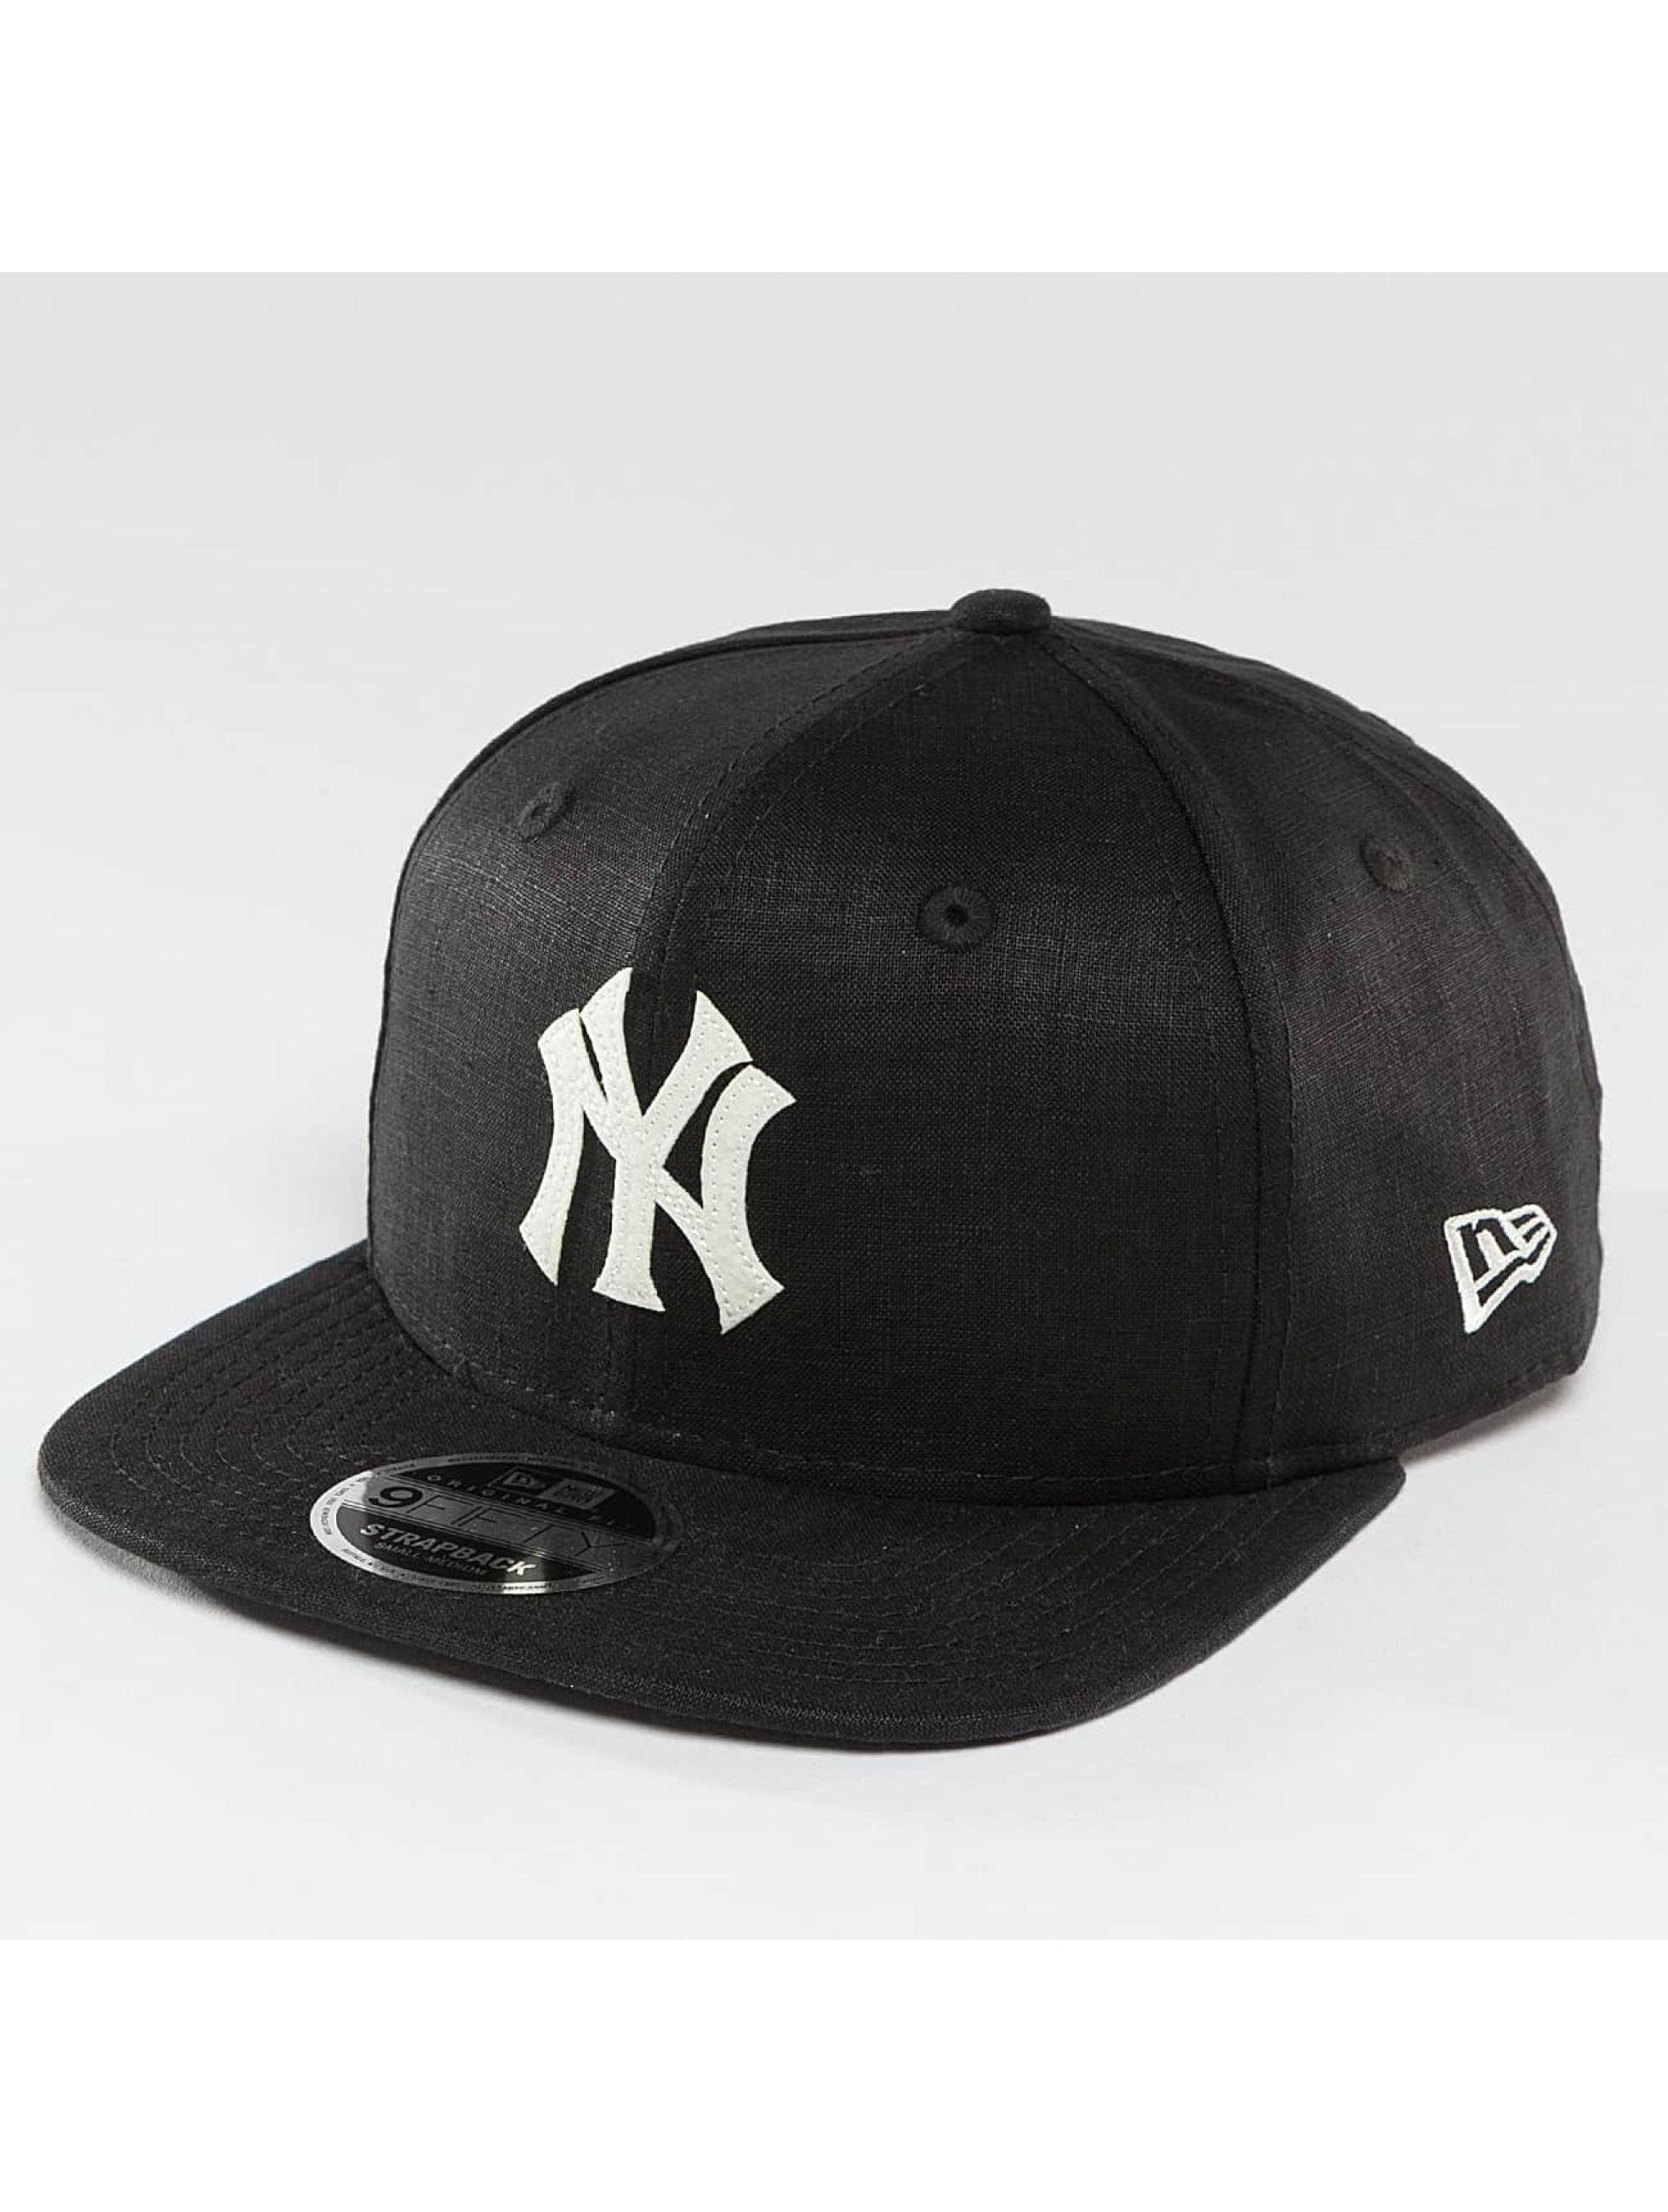 New Era Snapback Cap Linen Felt NY Yankees Cooperstown black